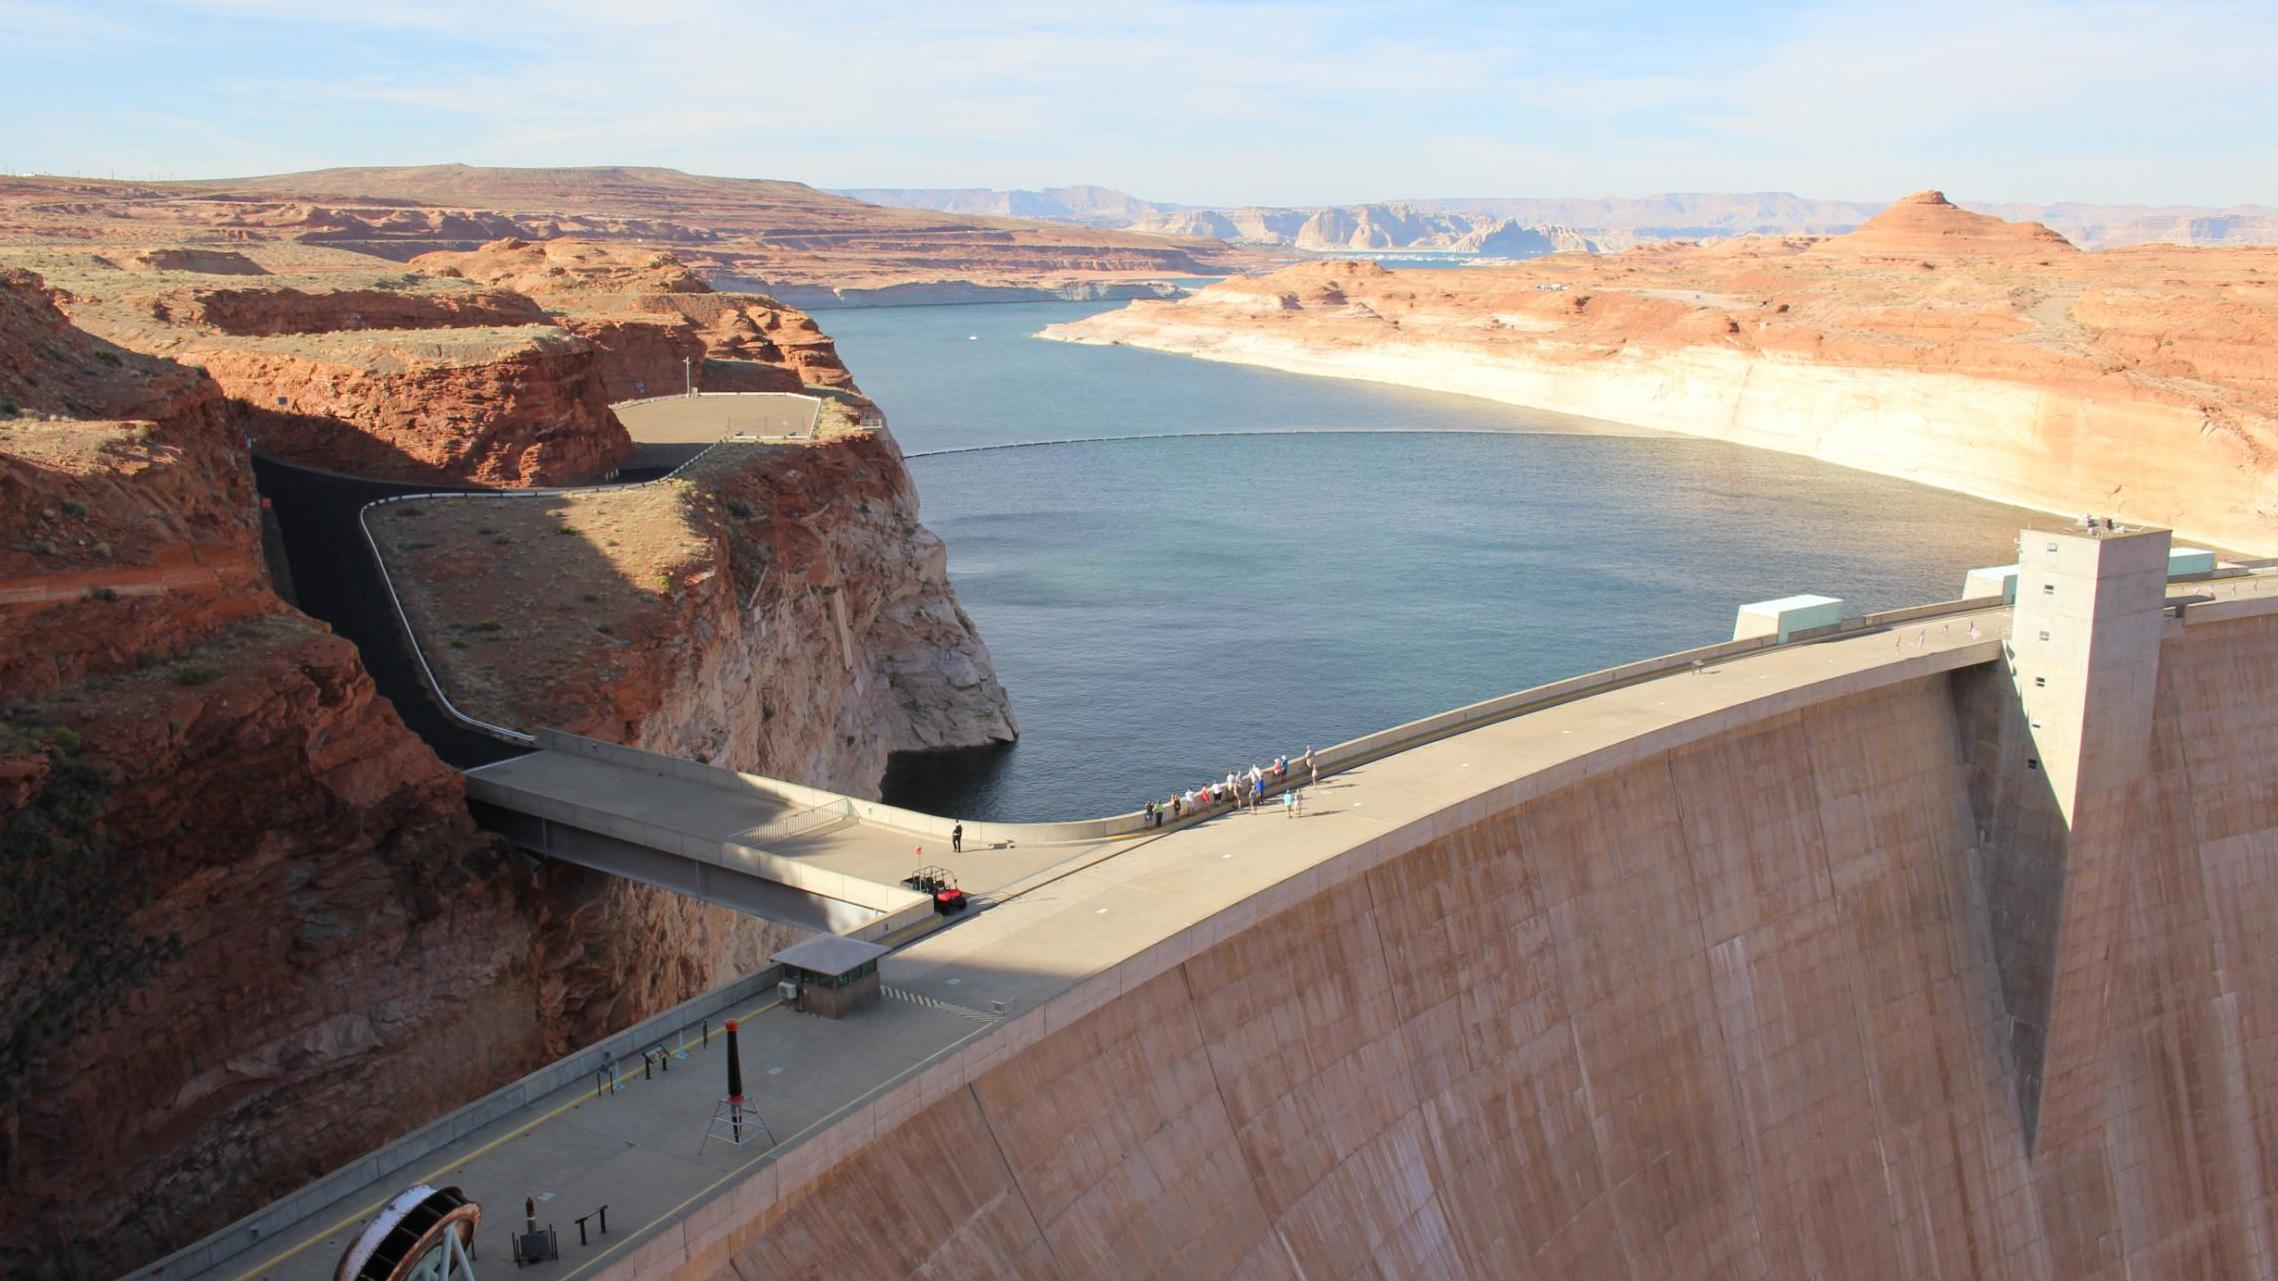 Lake Powell stores water from the Colorado River and straddles the Arizona-Utah border. It is currently storing less than half of its capacity.